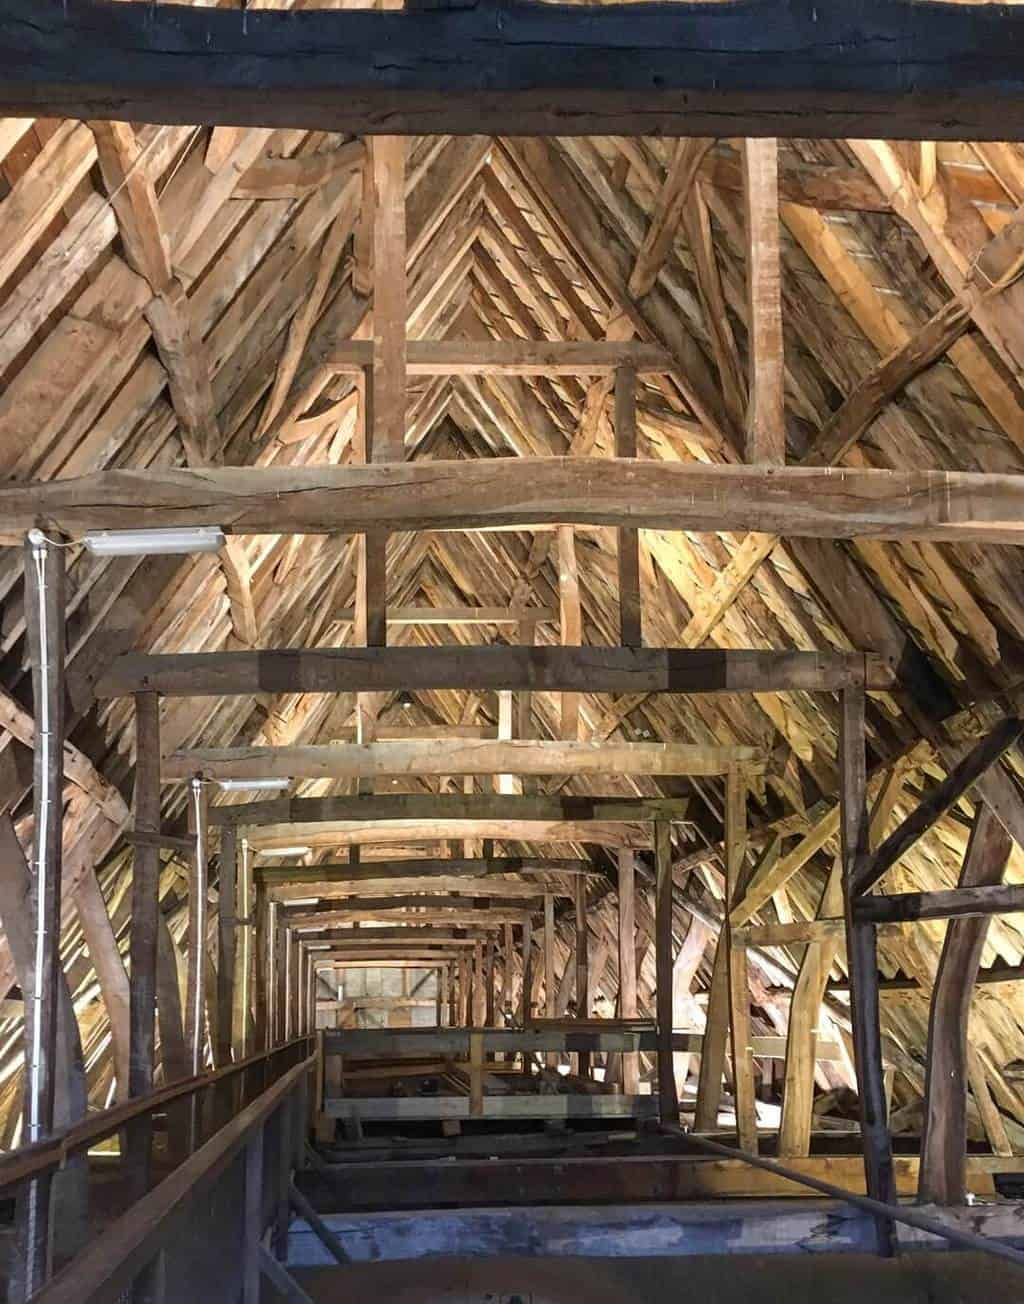 The Tower Tour takes visitors into the roof space to see 13th century beams still in place.